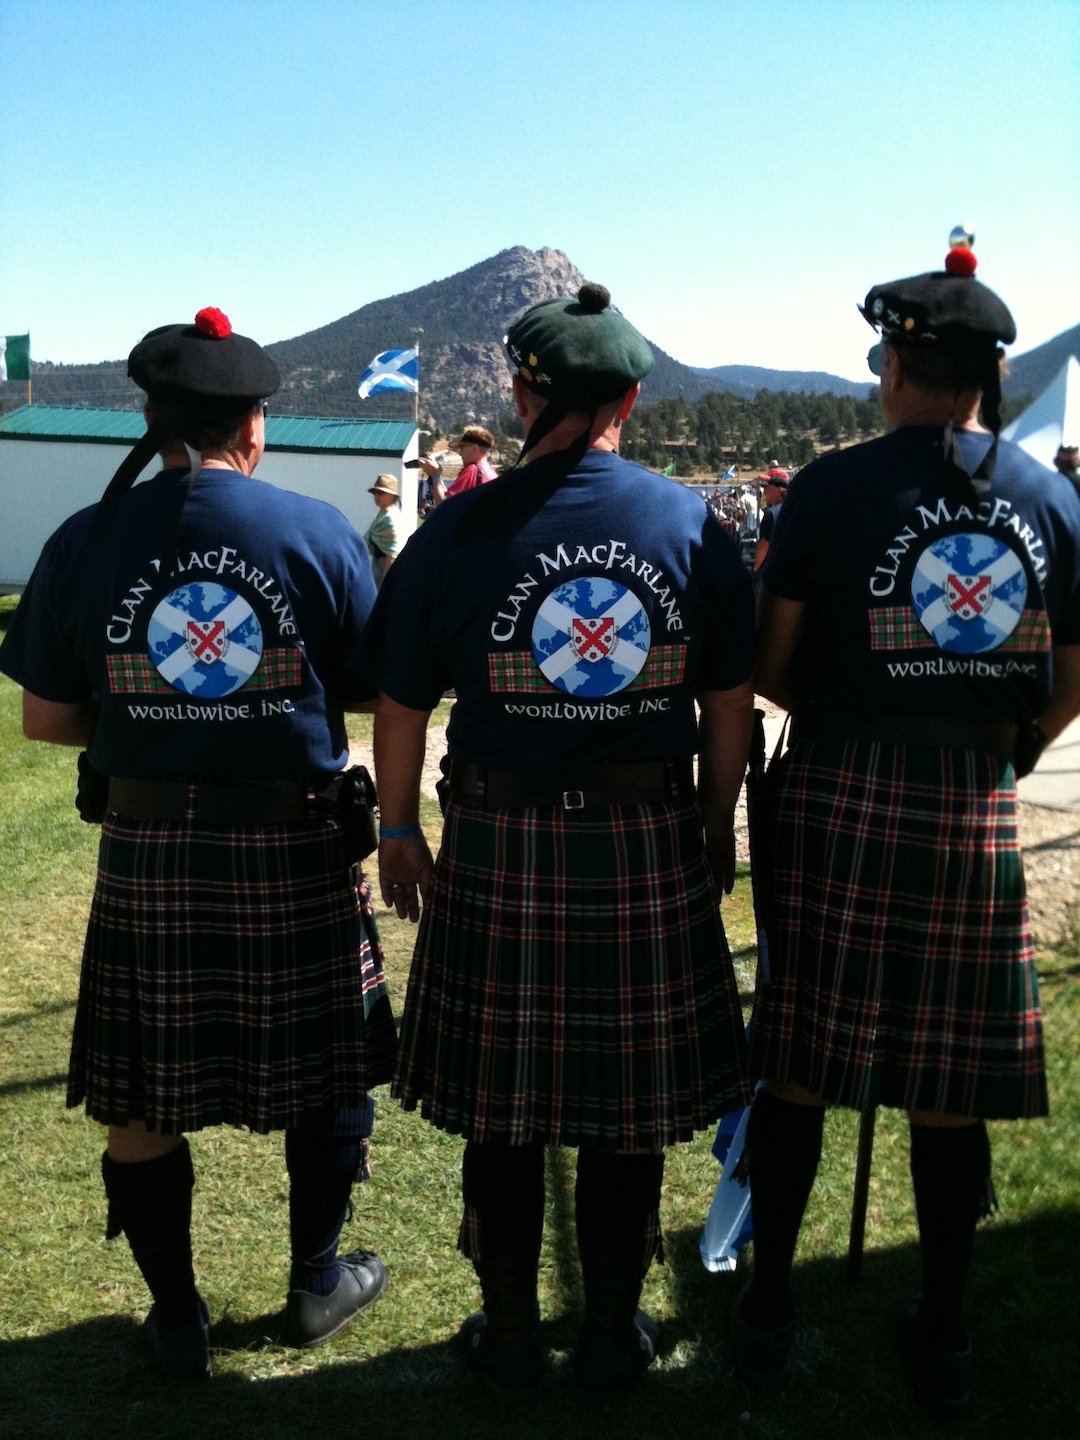 guys in cmw kilt